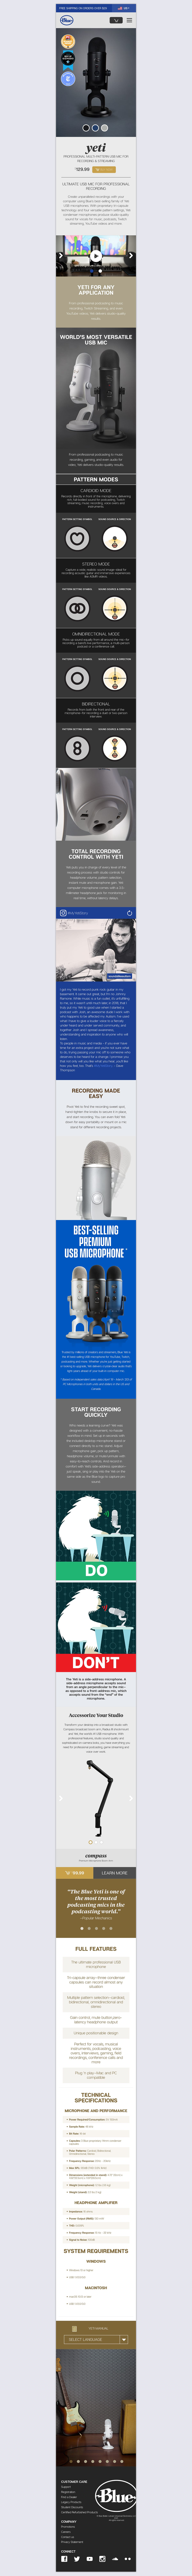 Blue Microphone Mobile Landing Page Example